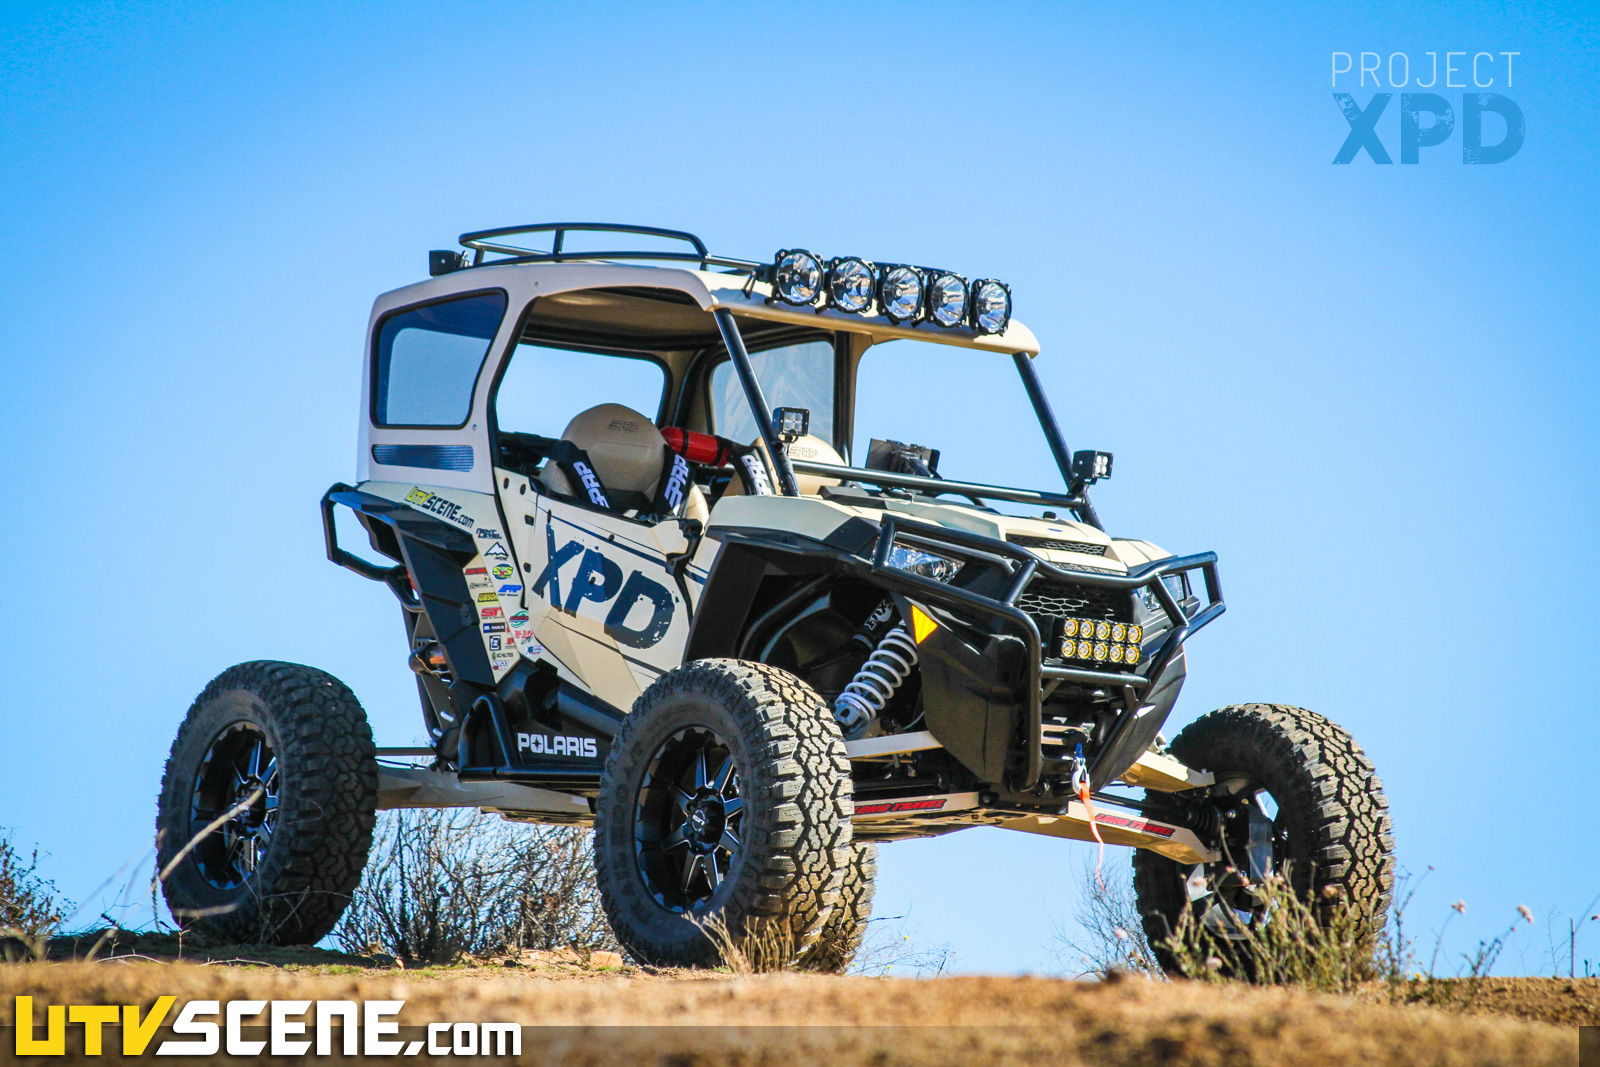 Project Xpd Polaris Rzr Xp Turbo Expedition Build